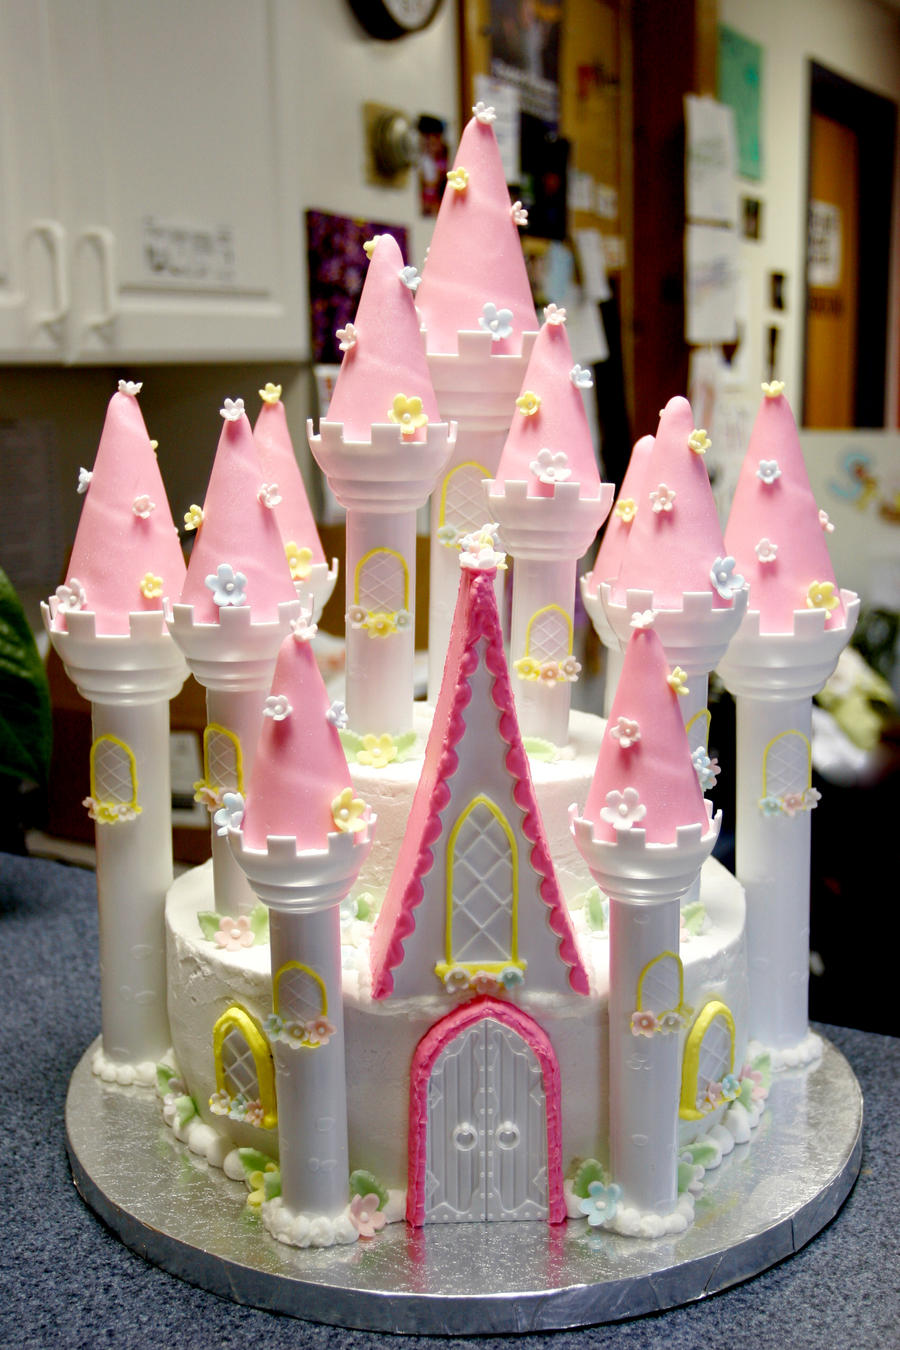 Pictures Of Princess Castle Cake : Images Princess Castle Cake 2015 - House Style Pictures